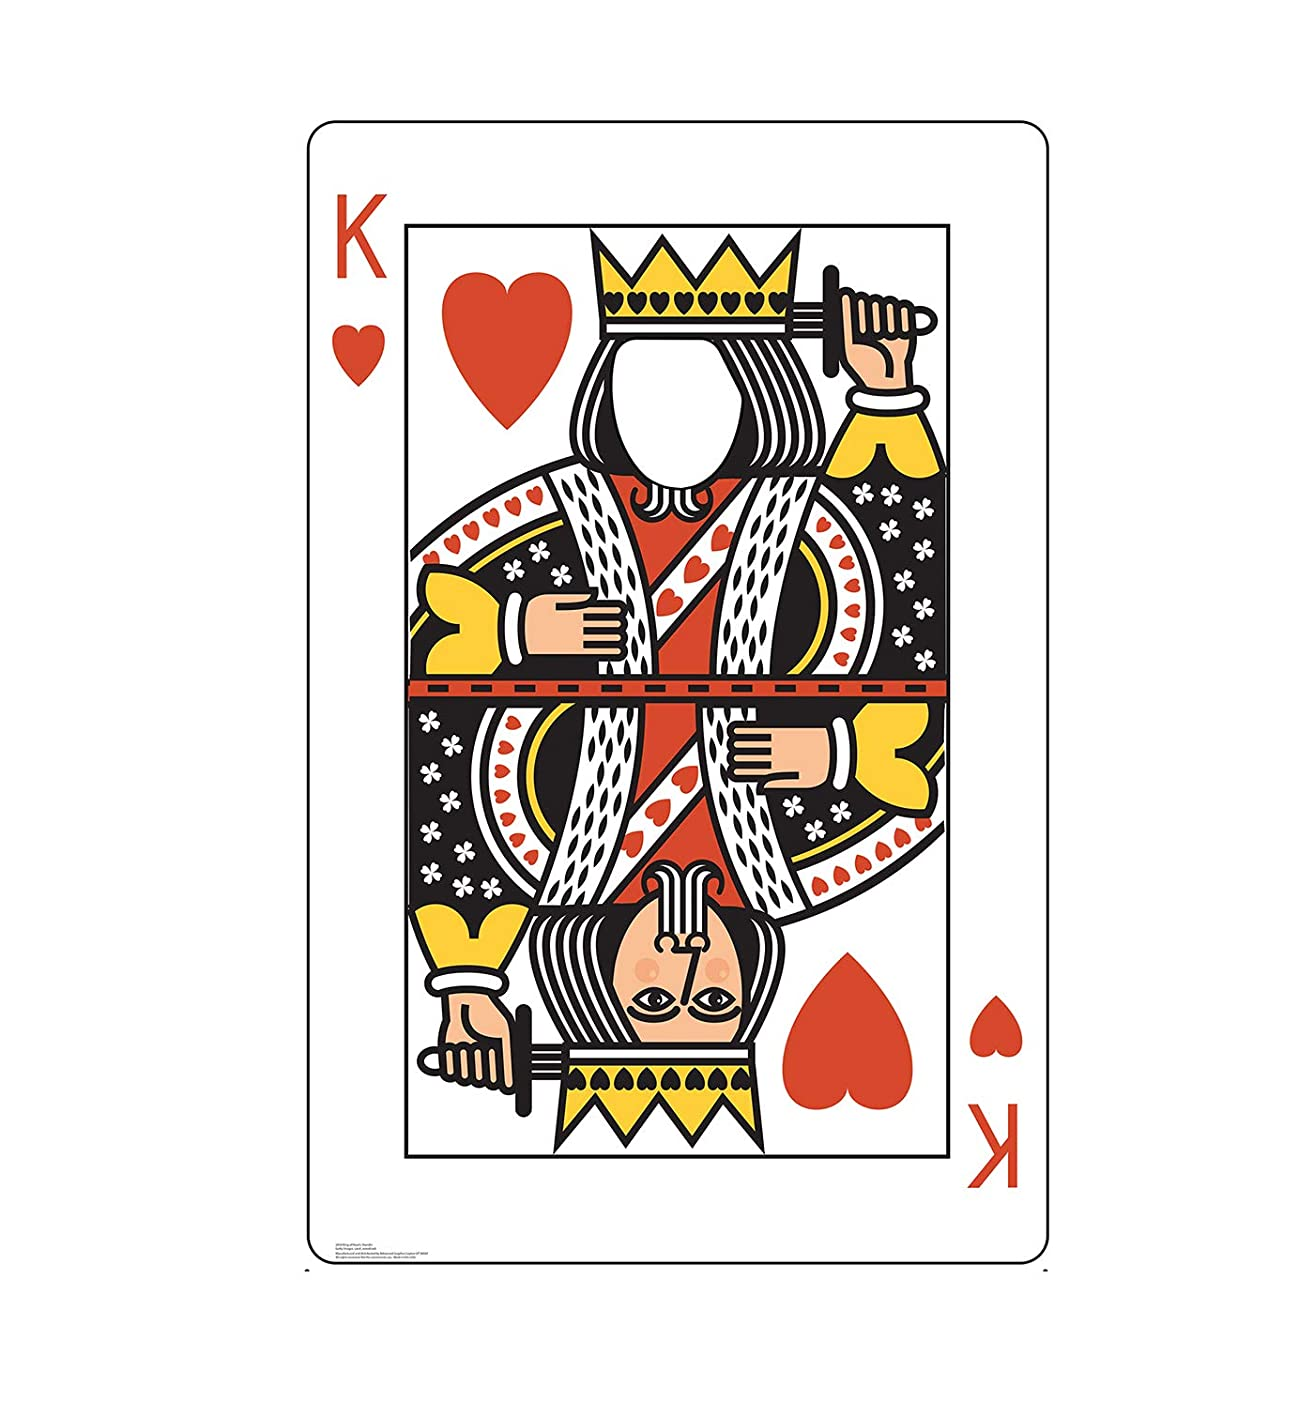 Advanced Graphics King of Hearts Card Stand-in Life Size Cardboard Cutout Standup